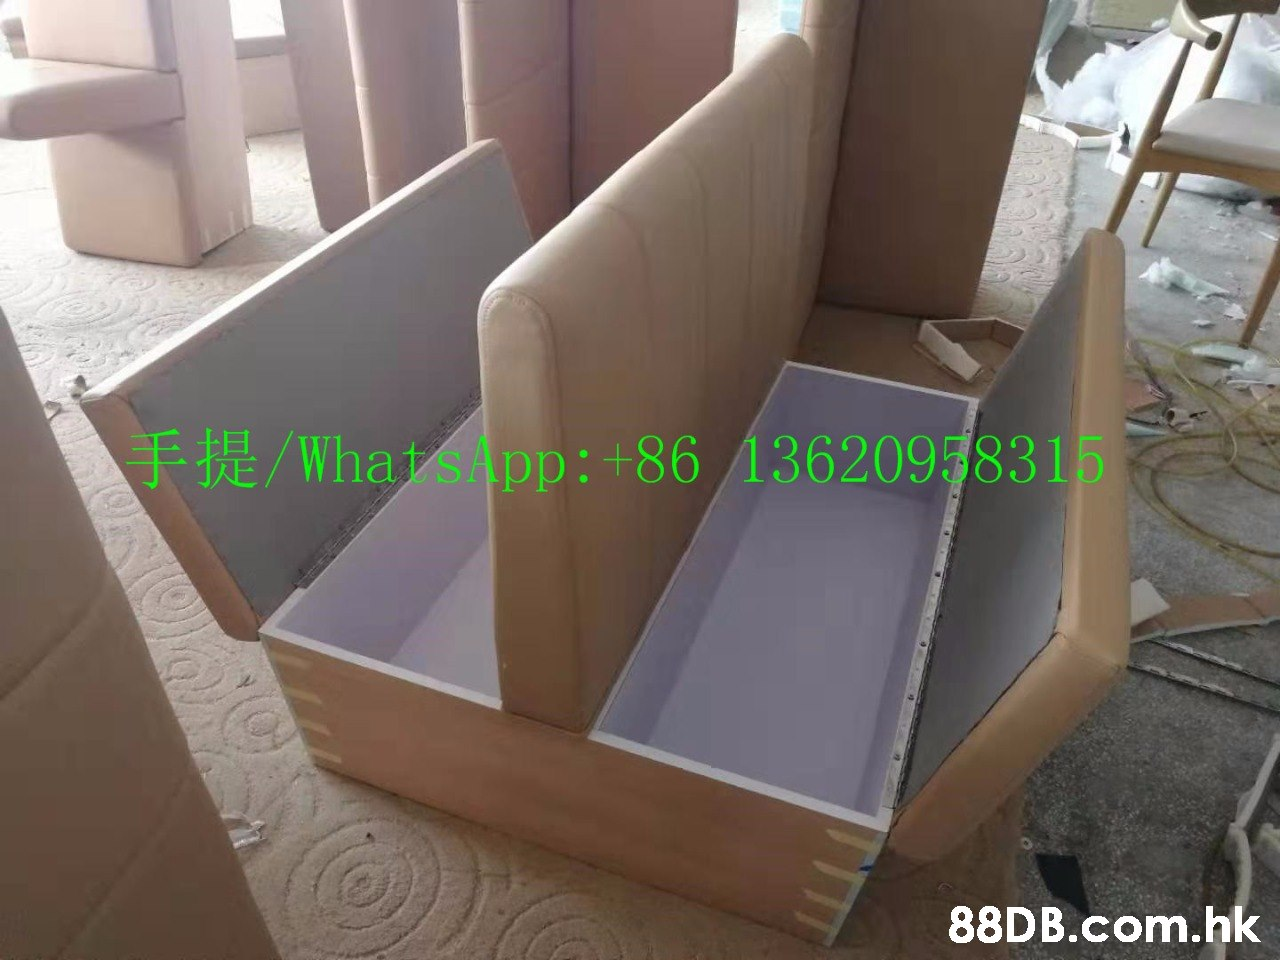 FWhatsApp: +86/13620958315 .hk  Product,Wood,Plywood,Cardboard,Furniture